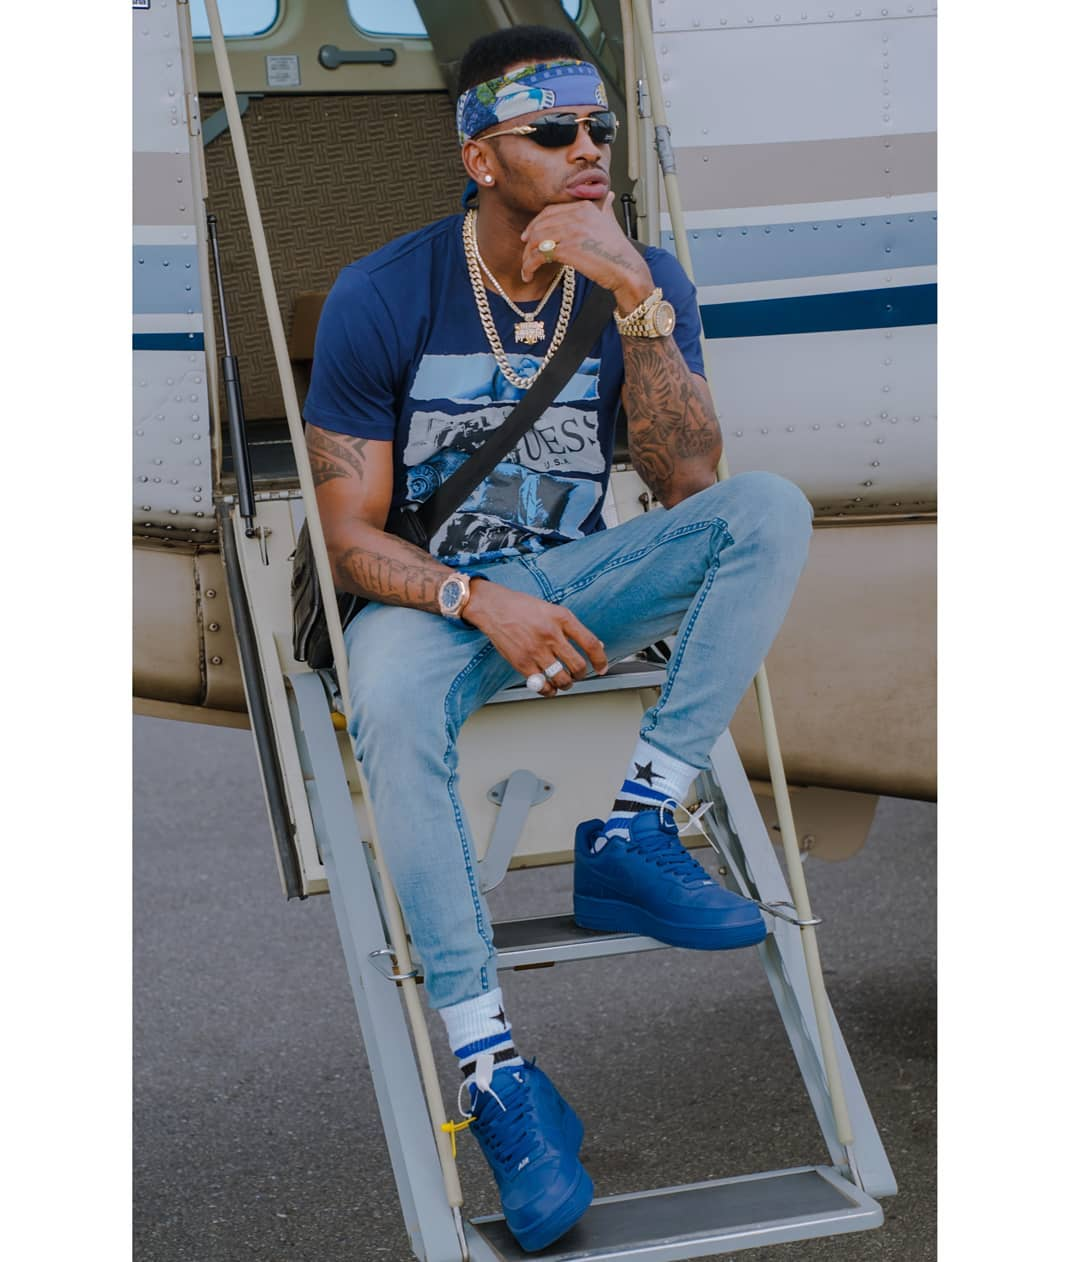 Diamond Platnumz, East Africa's most eligible bachelor? photo credit: Instagram/Diamond Platnumz